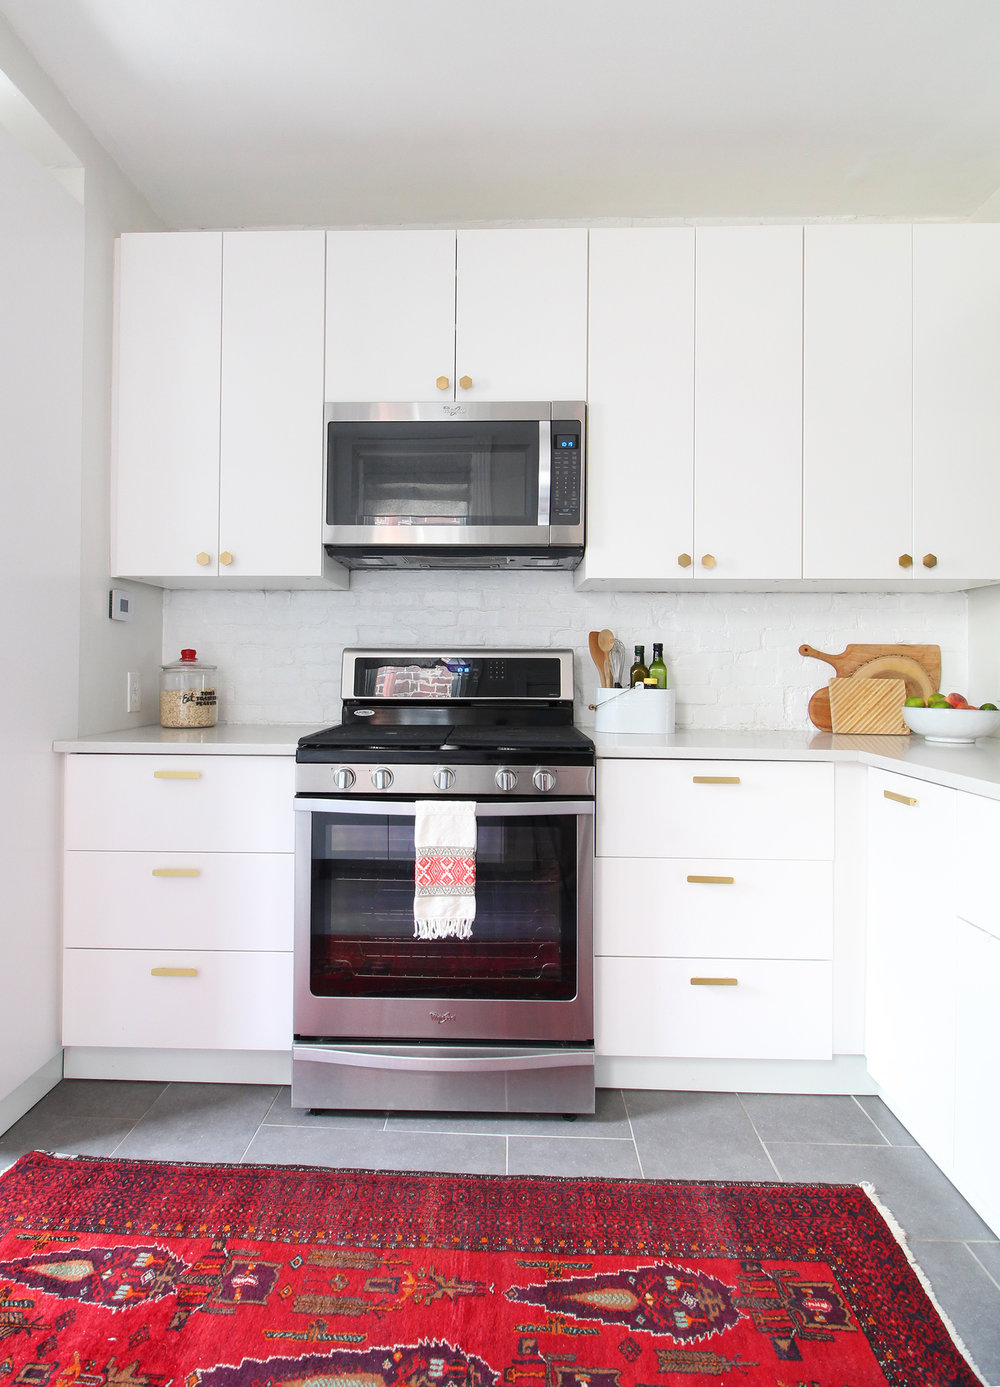 Read My Review Of Our Modern White Kitchen Renovation Using IKEA Cabinets,  Caesarstone Countertops,